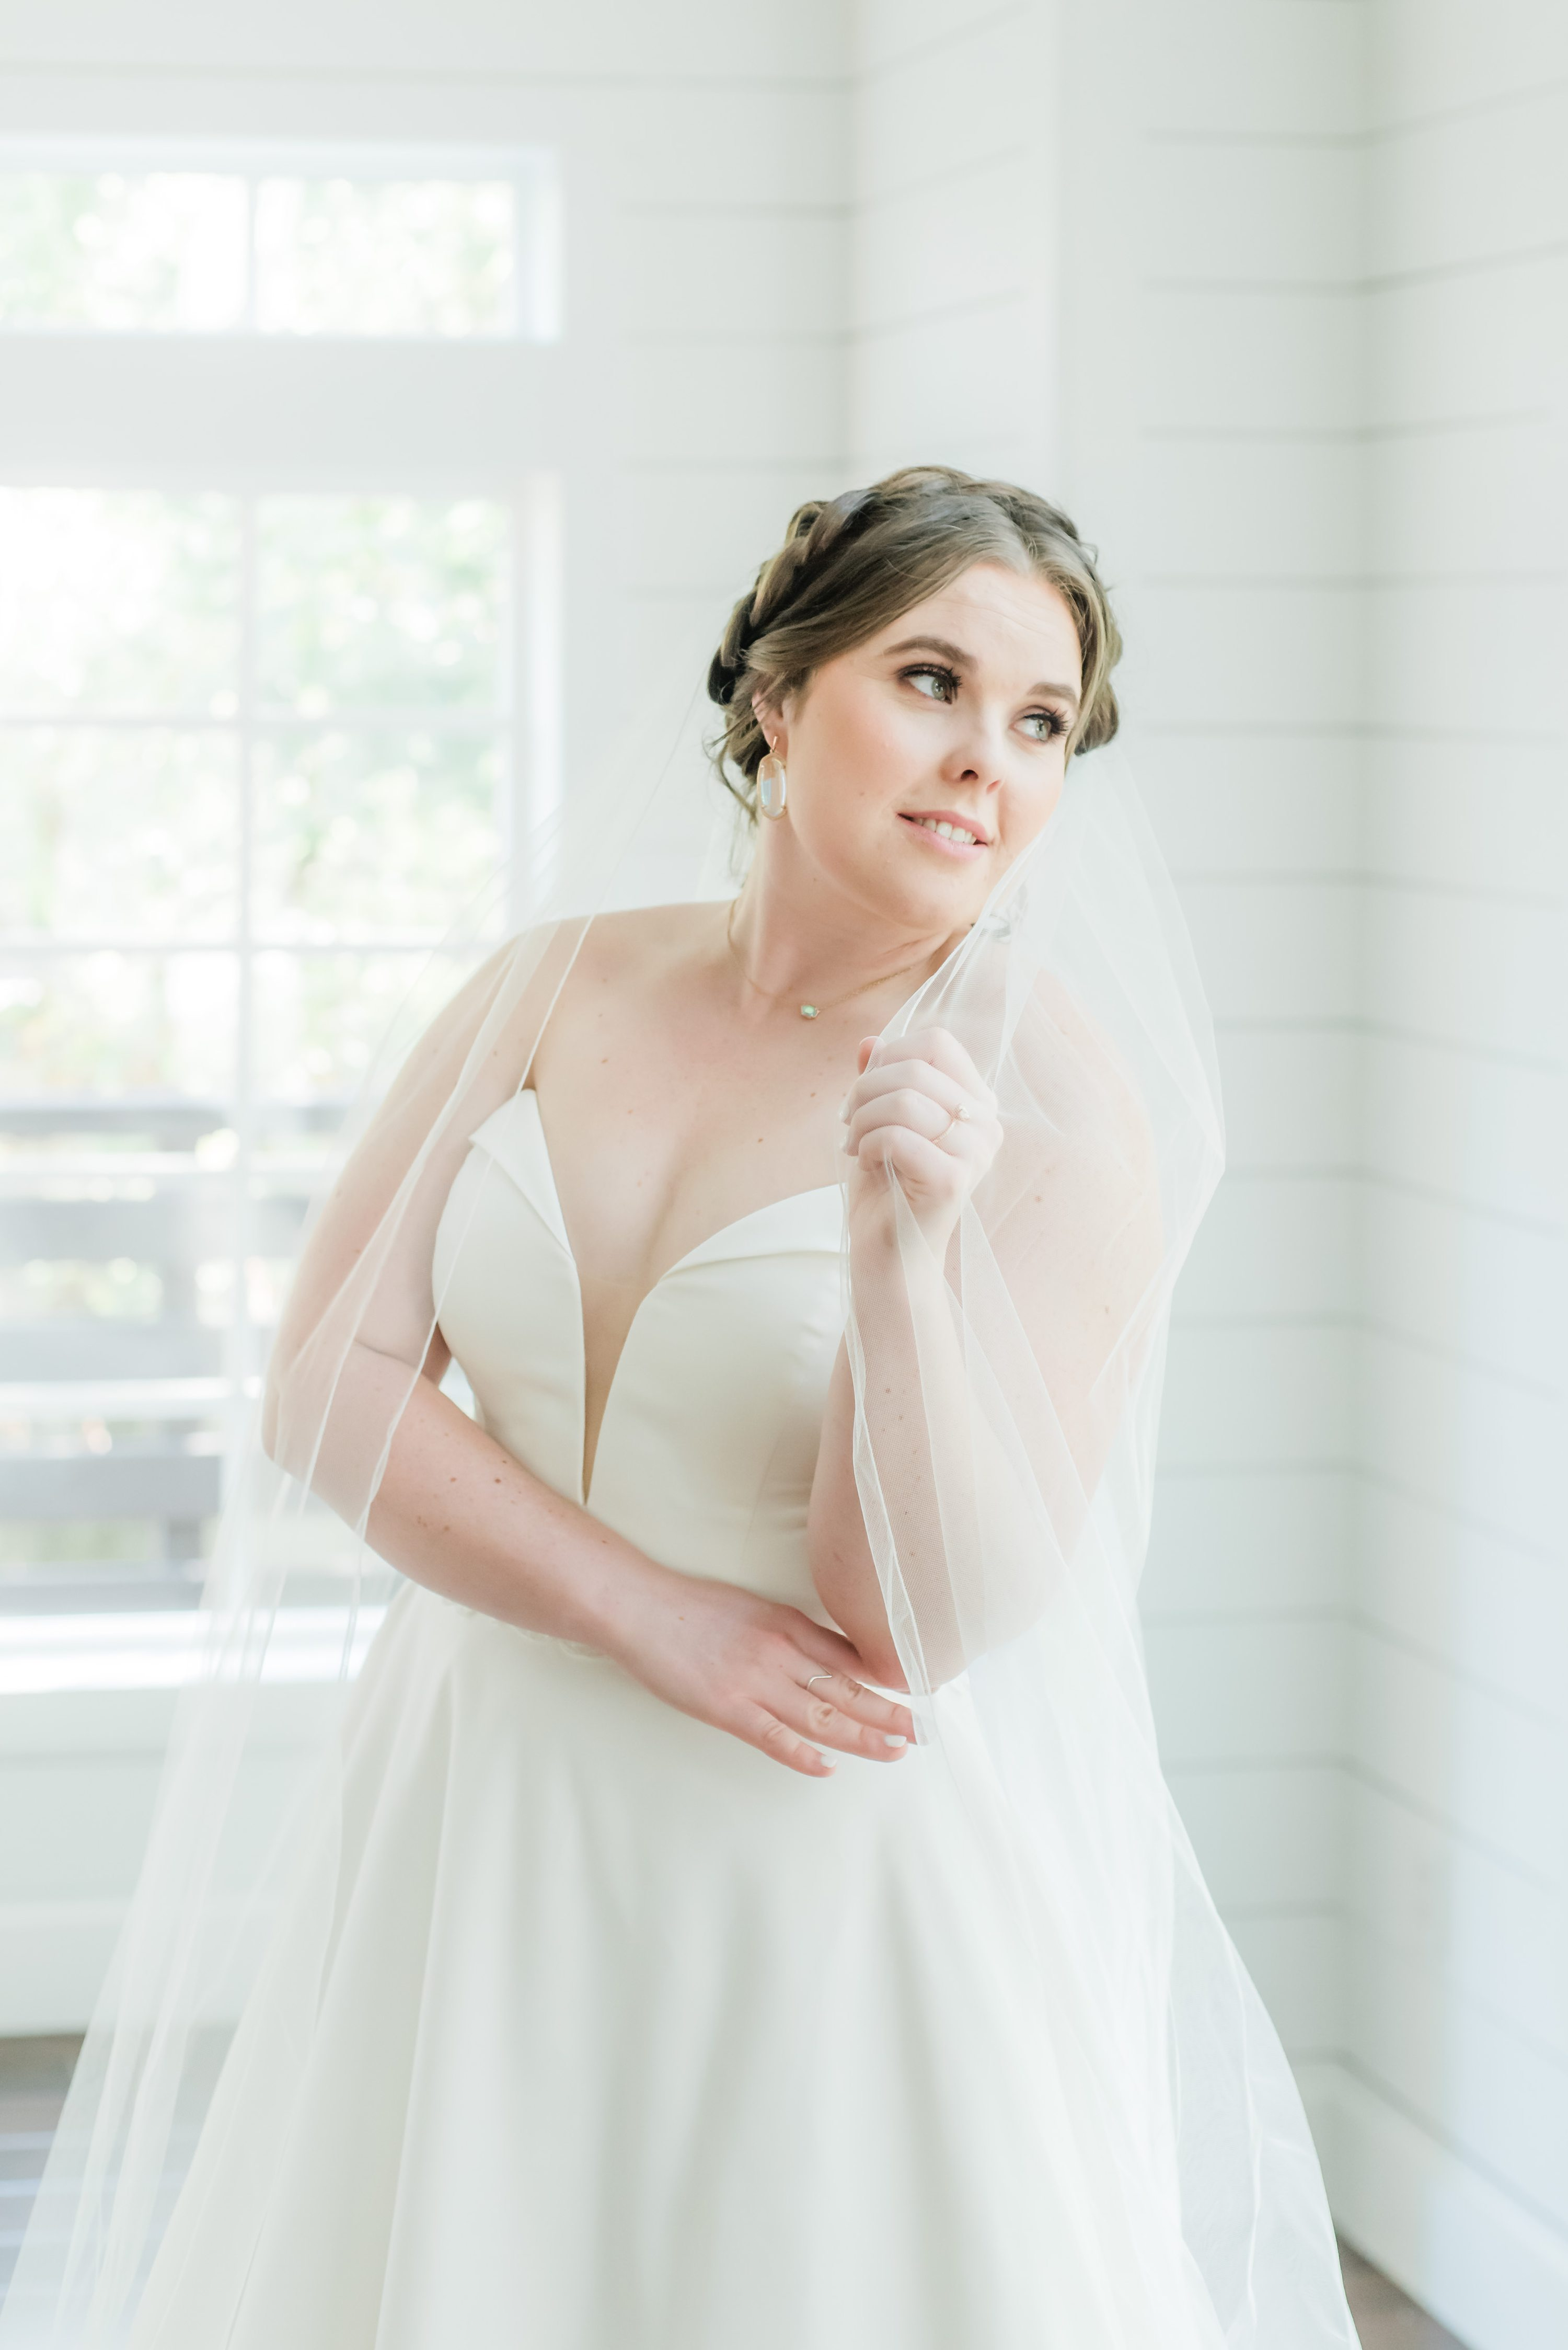 Eric & Jenn Photography,Houston Wedding Photographer